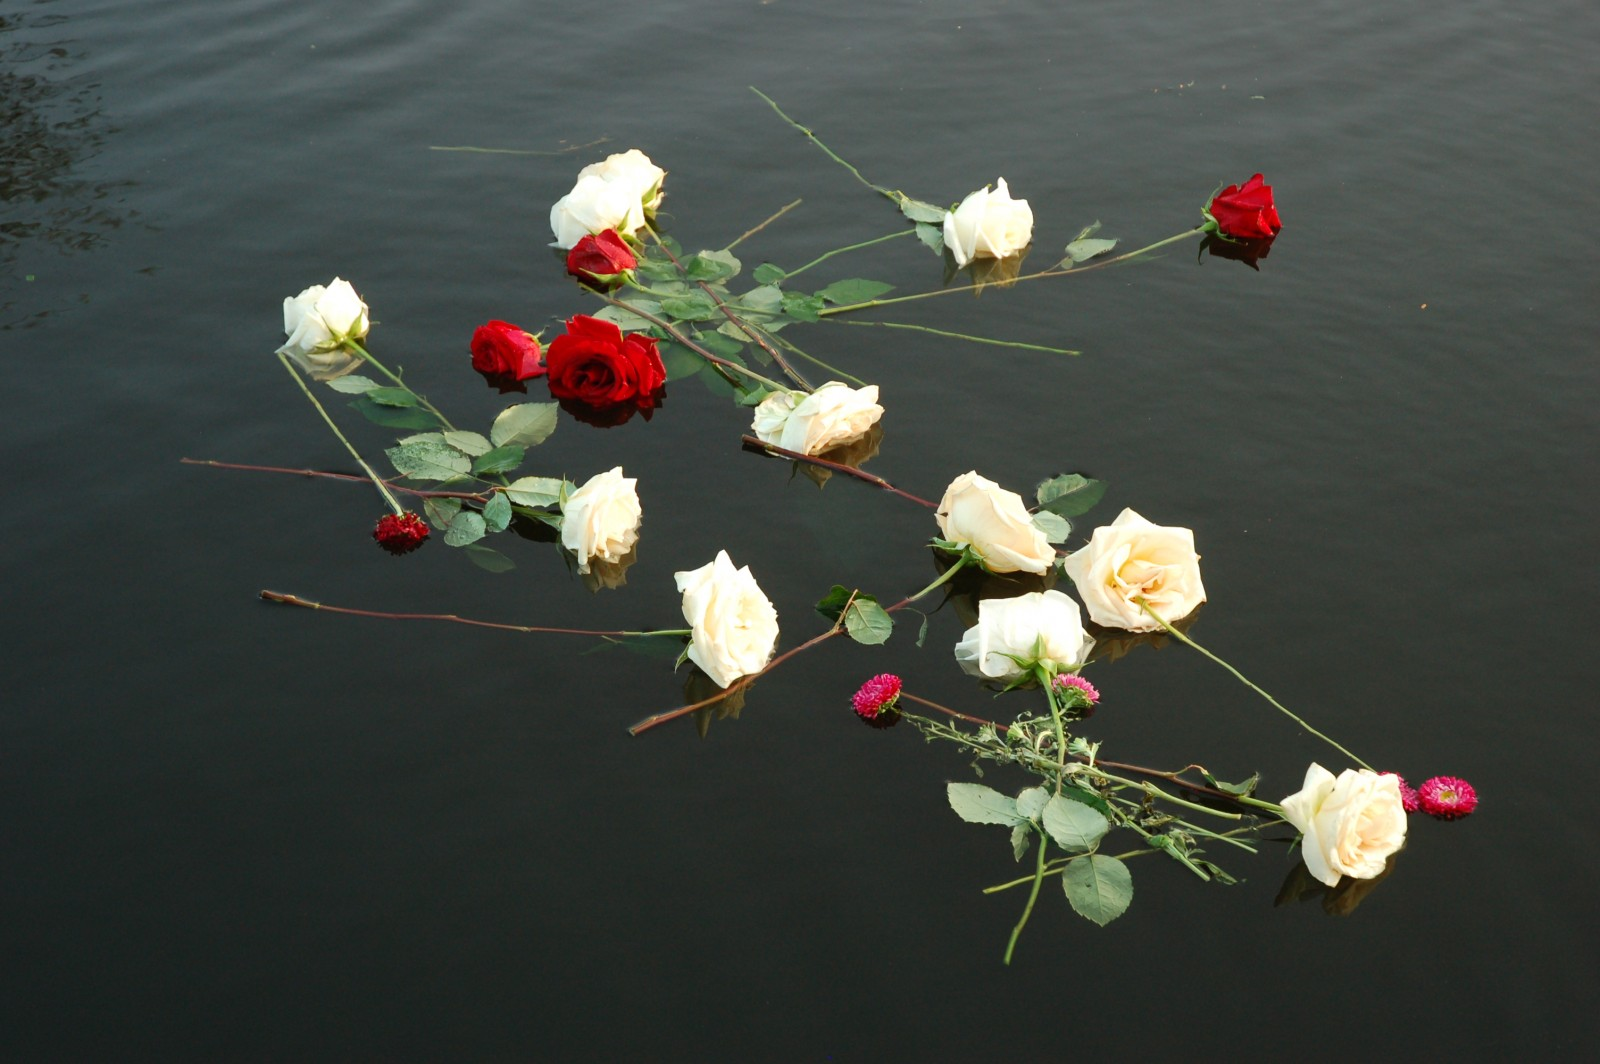 Obituaries in the yachting industry